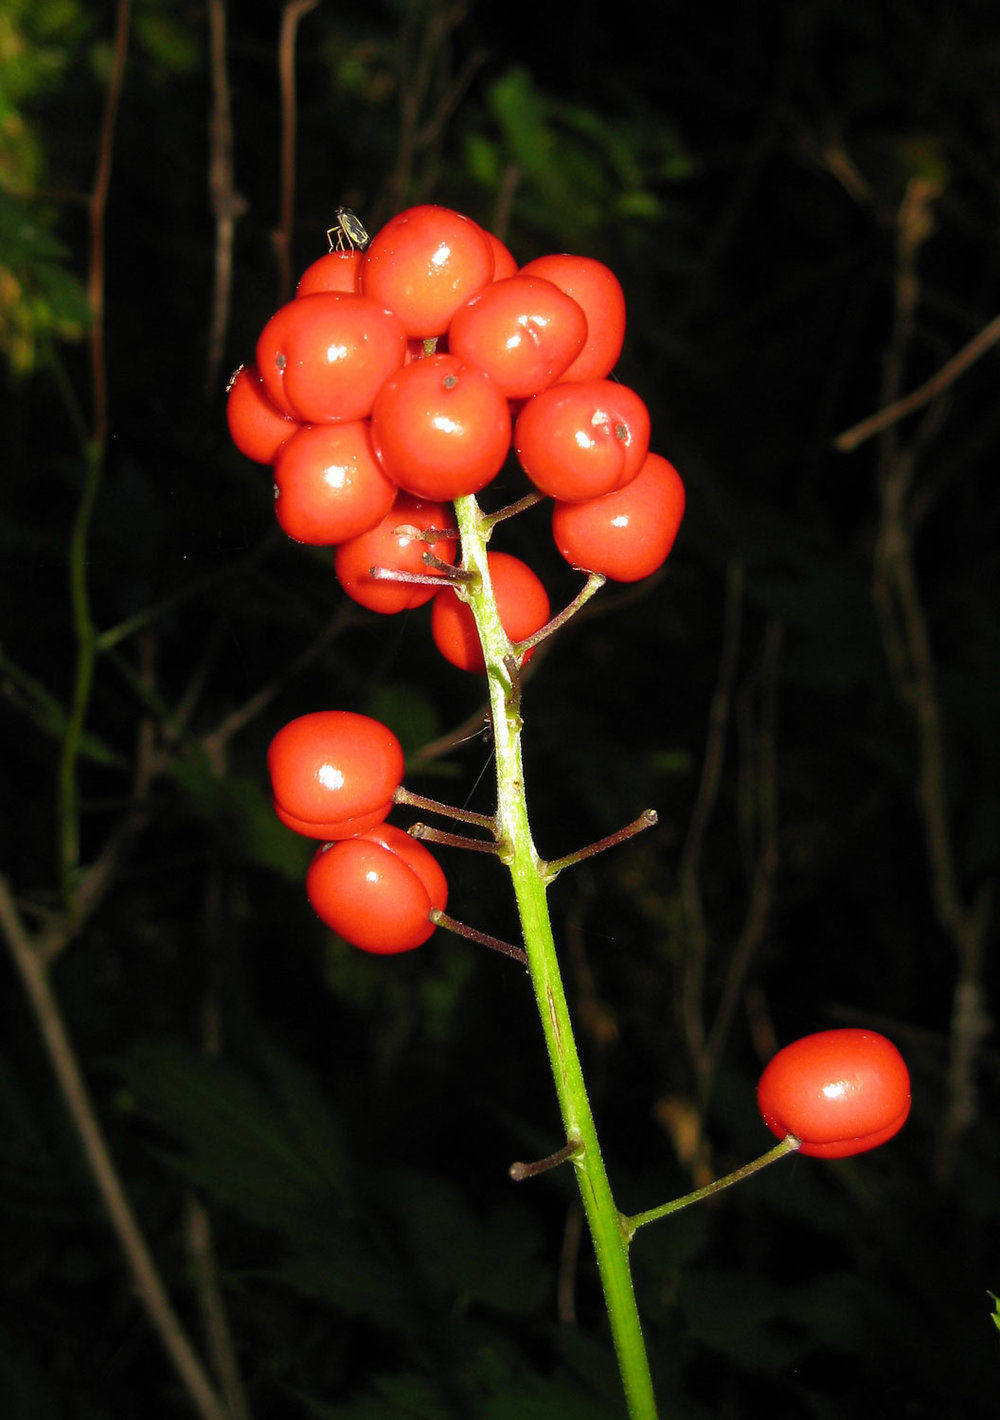 baneberry+red+berries+poisonous+plant+Southeast+Alaska.jpeg